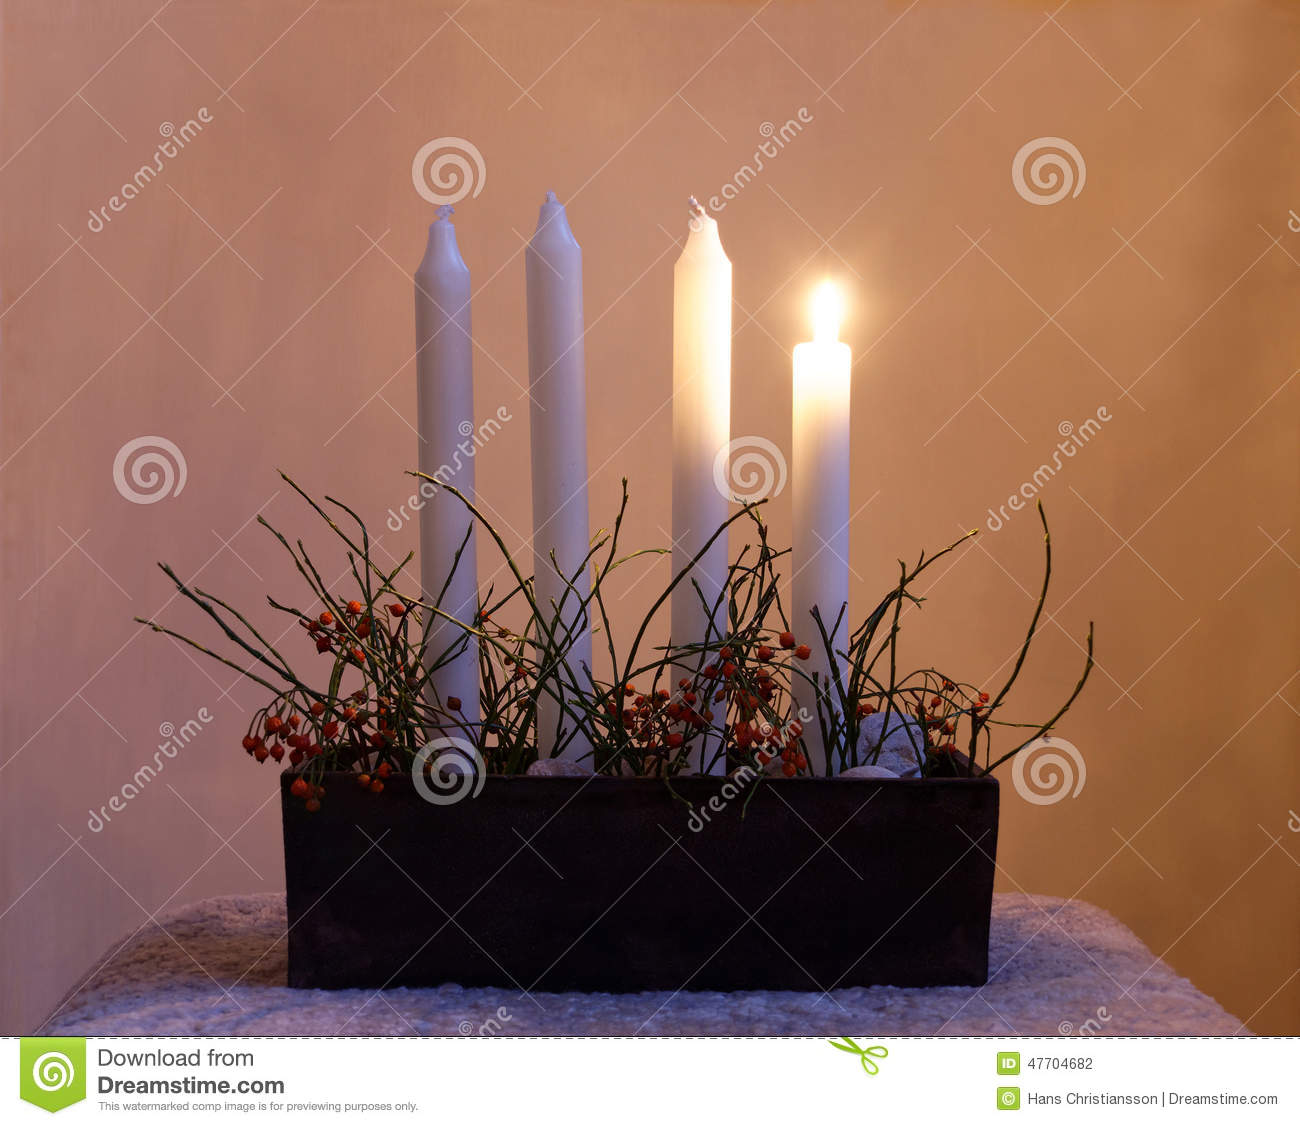 Advent Candle Holder With Four Candles Stock Photo Image Of Christmas Holiday 47704682